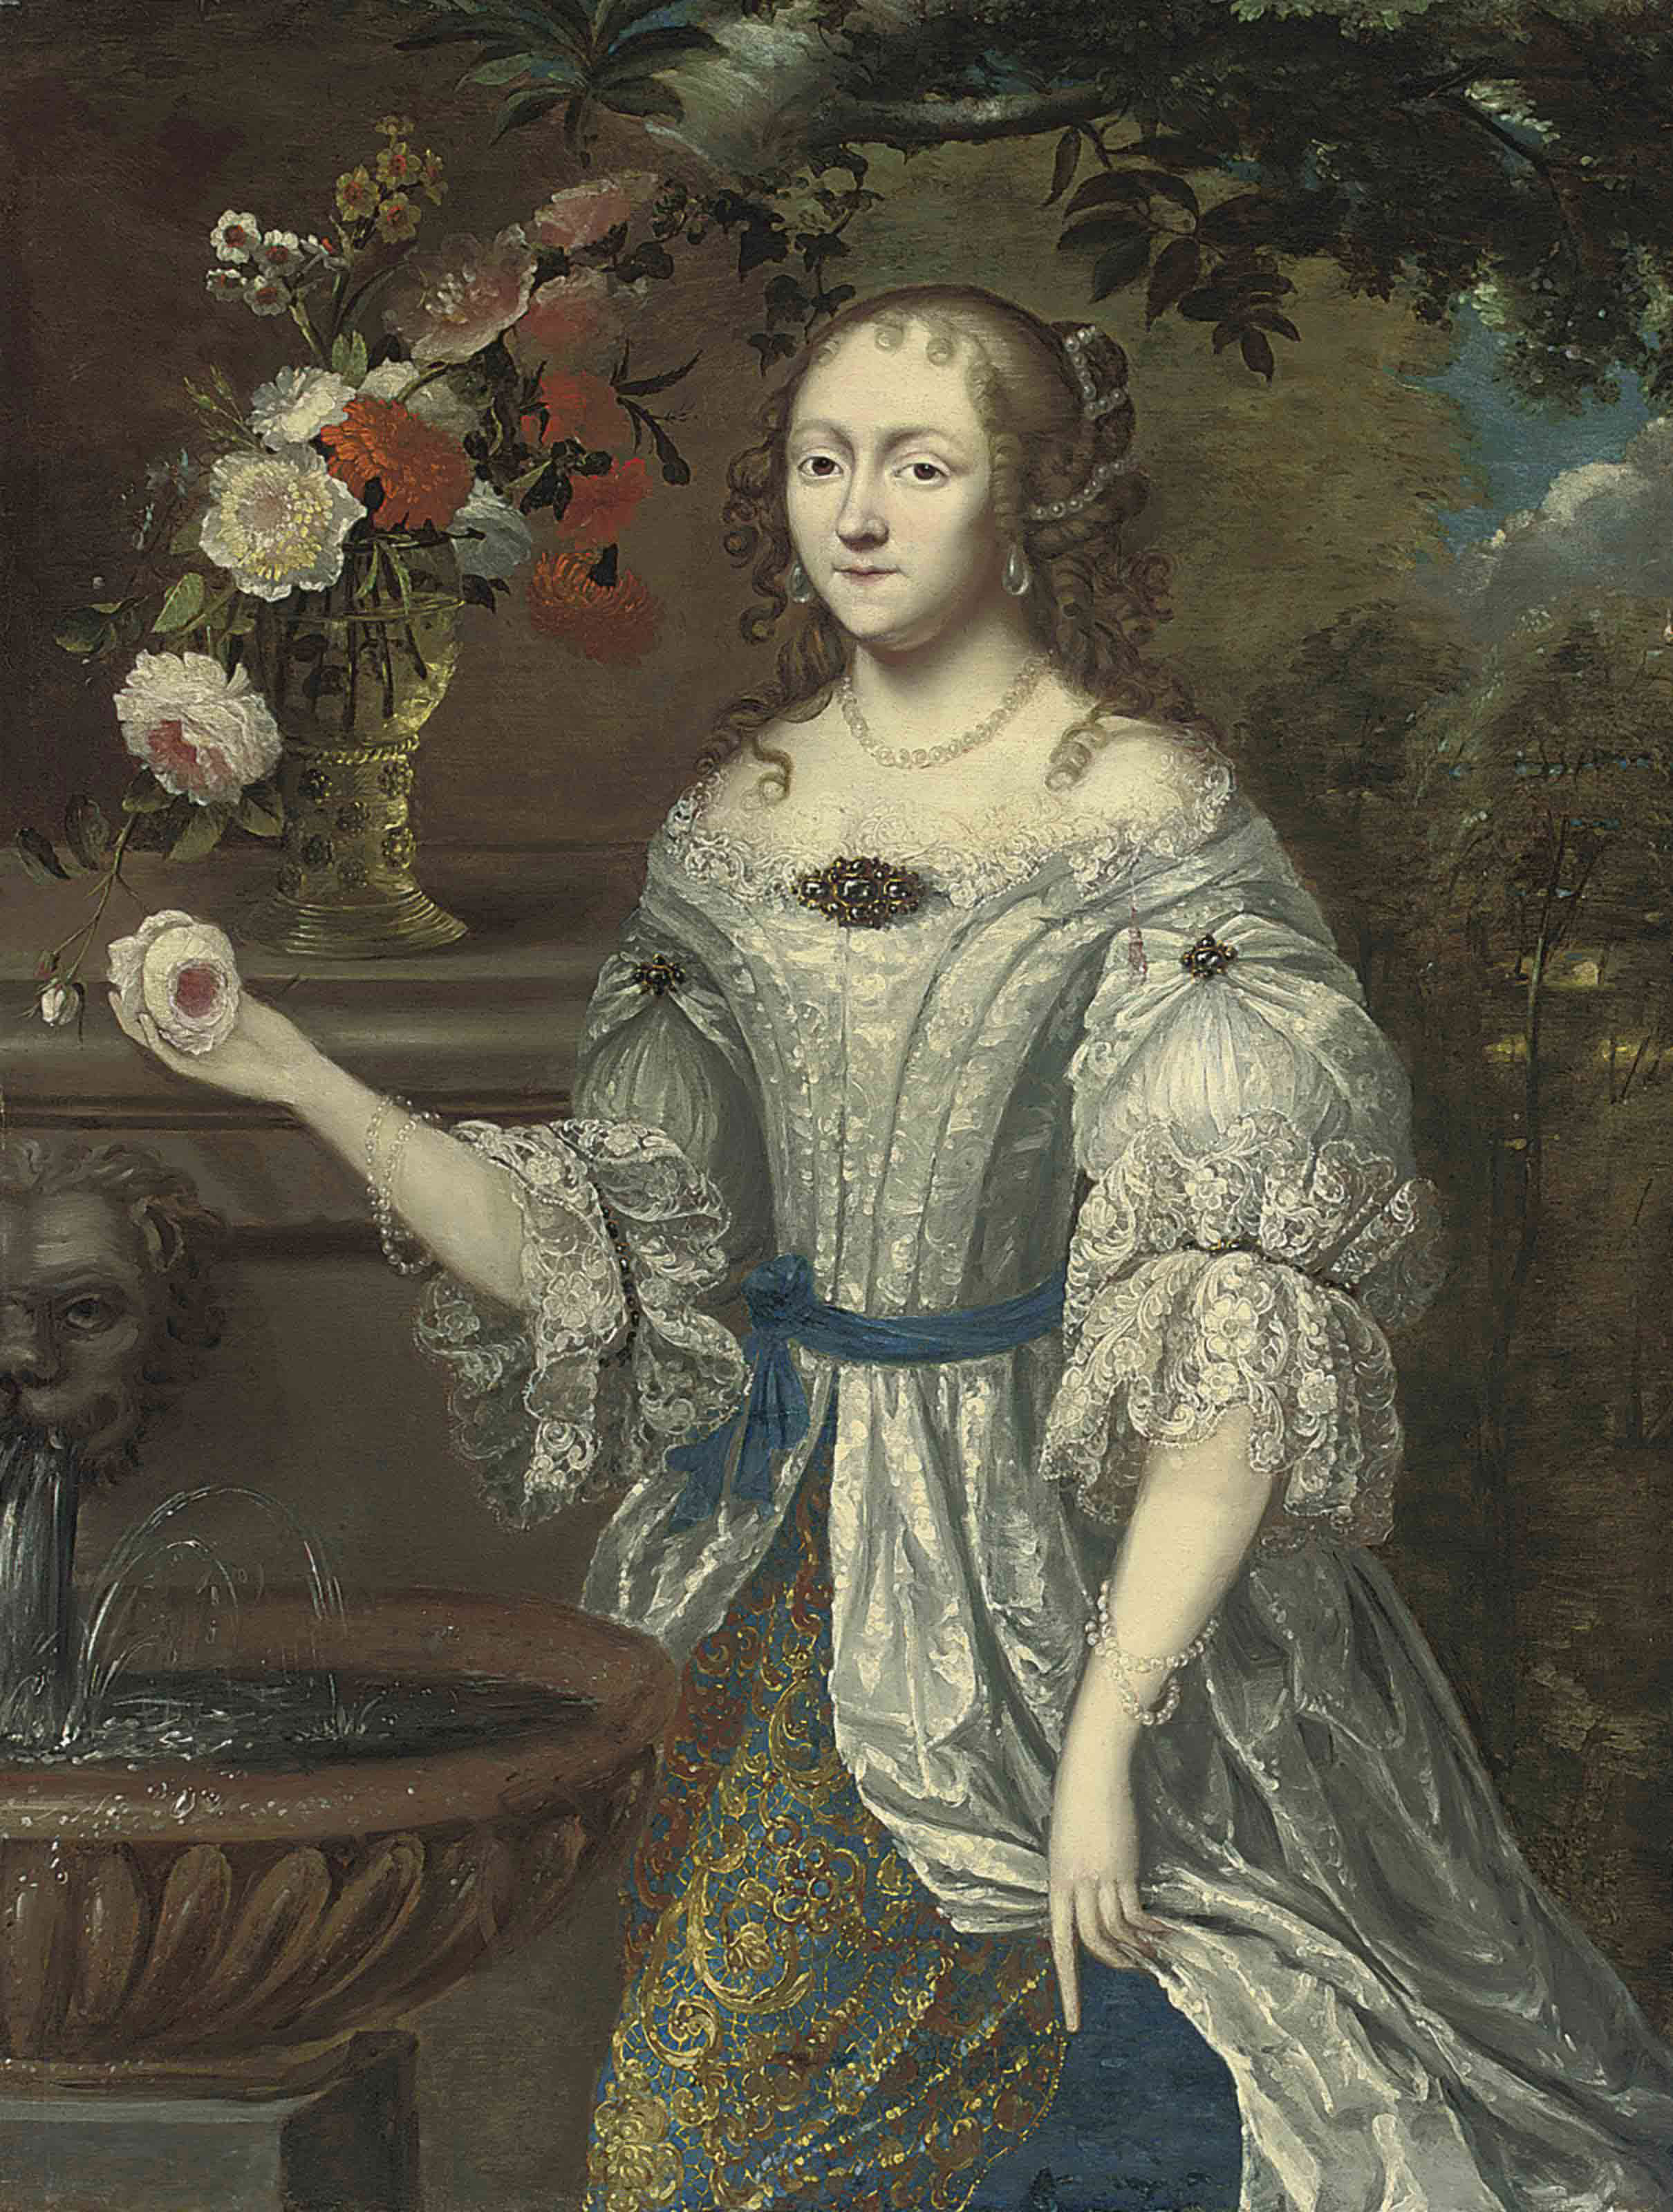 Portrait of a lady traditionally identified as Madame Ninon de Lenclos (1620-1705), three-quarter-length, in a lace-trimmed blue and gray dress, with roses, narcissi and other flowers in a roemer on a ledge, beside a classical fountain